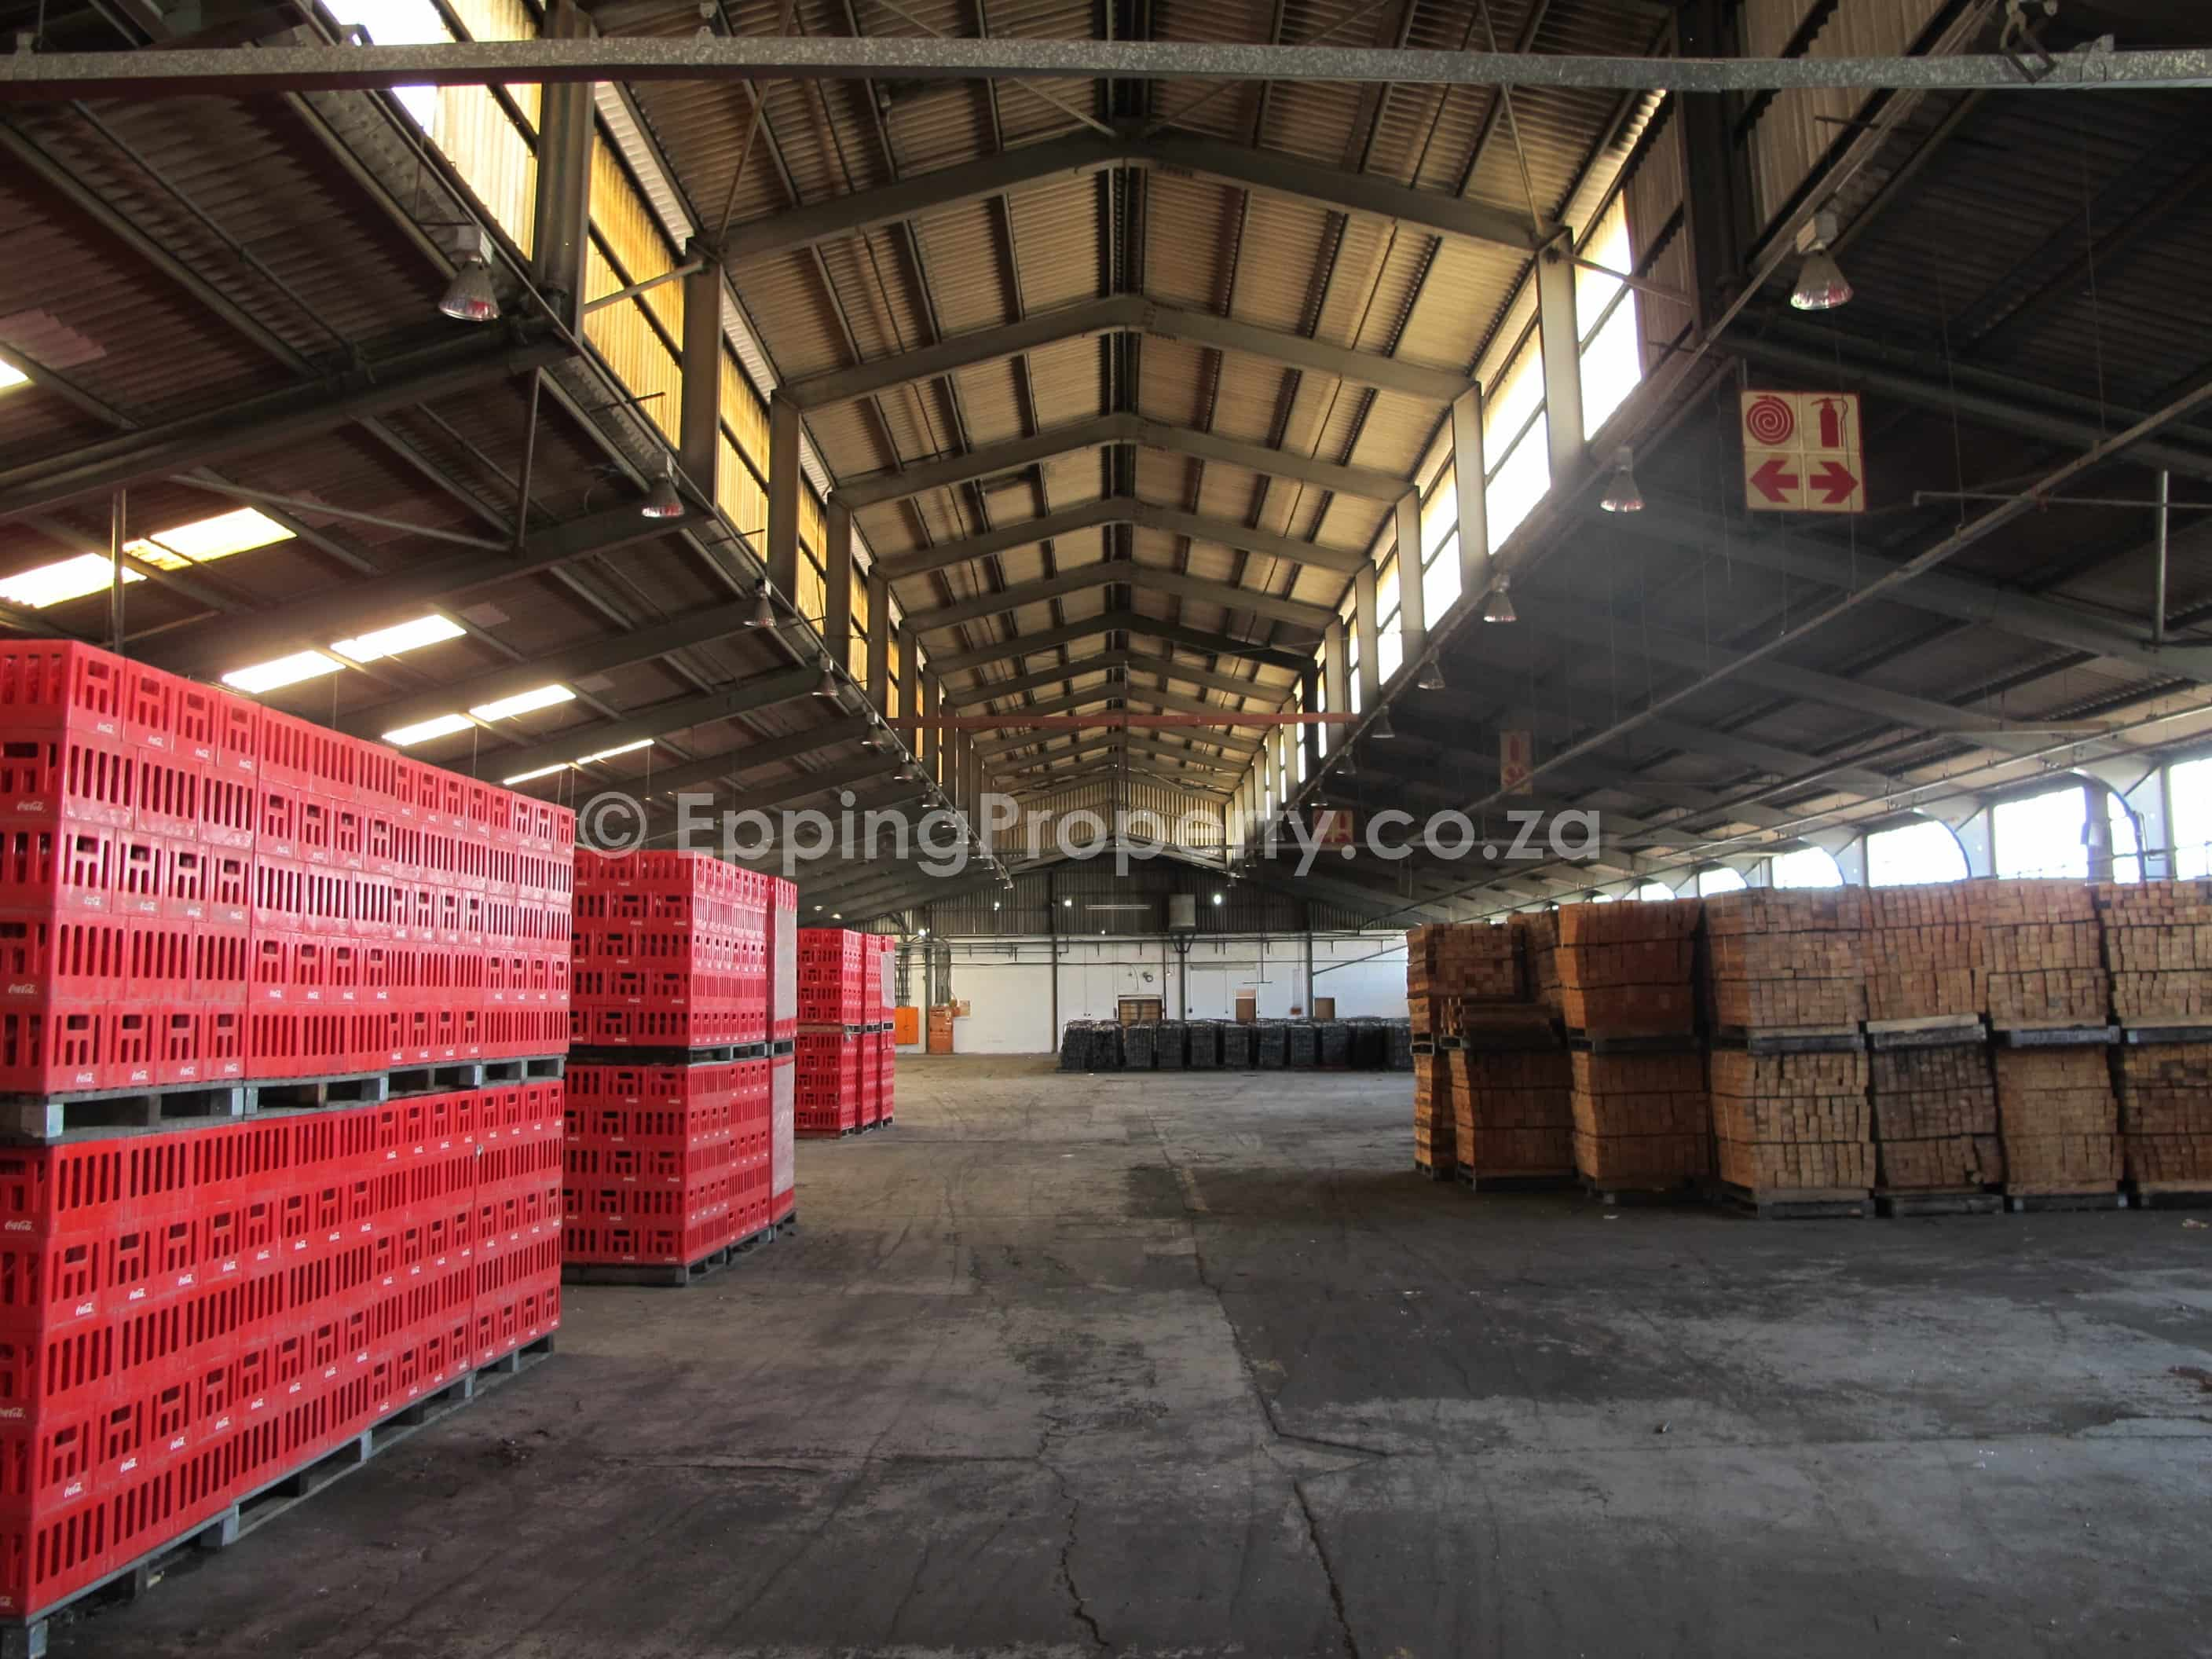 storage warehouse to rent in parow industria epping property. Black Bedroom Furniture Sets. Home Design Ideas